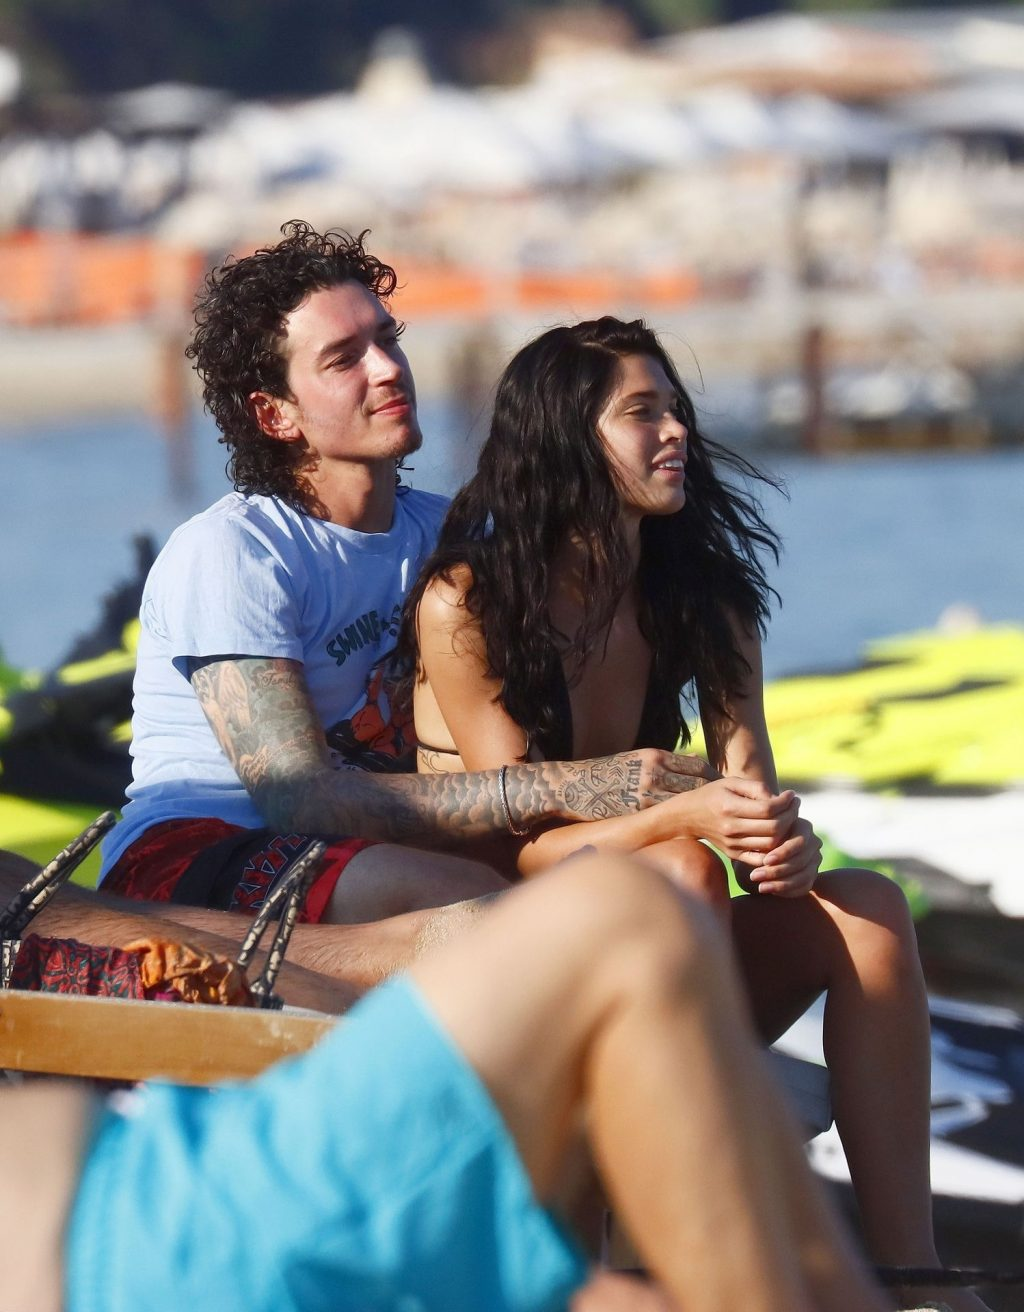 Julian Perretta Enjoys a Day with His New Girlfriend in the South of France (55 Photos)